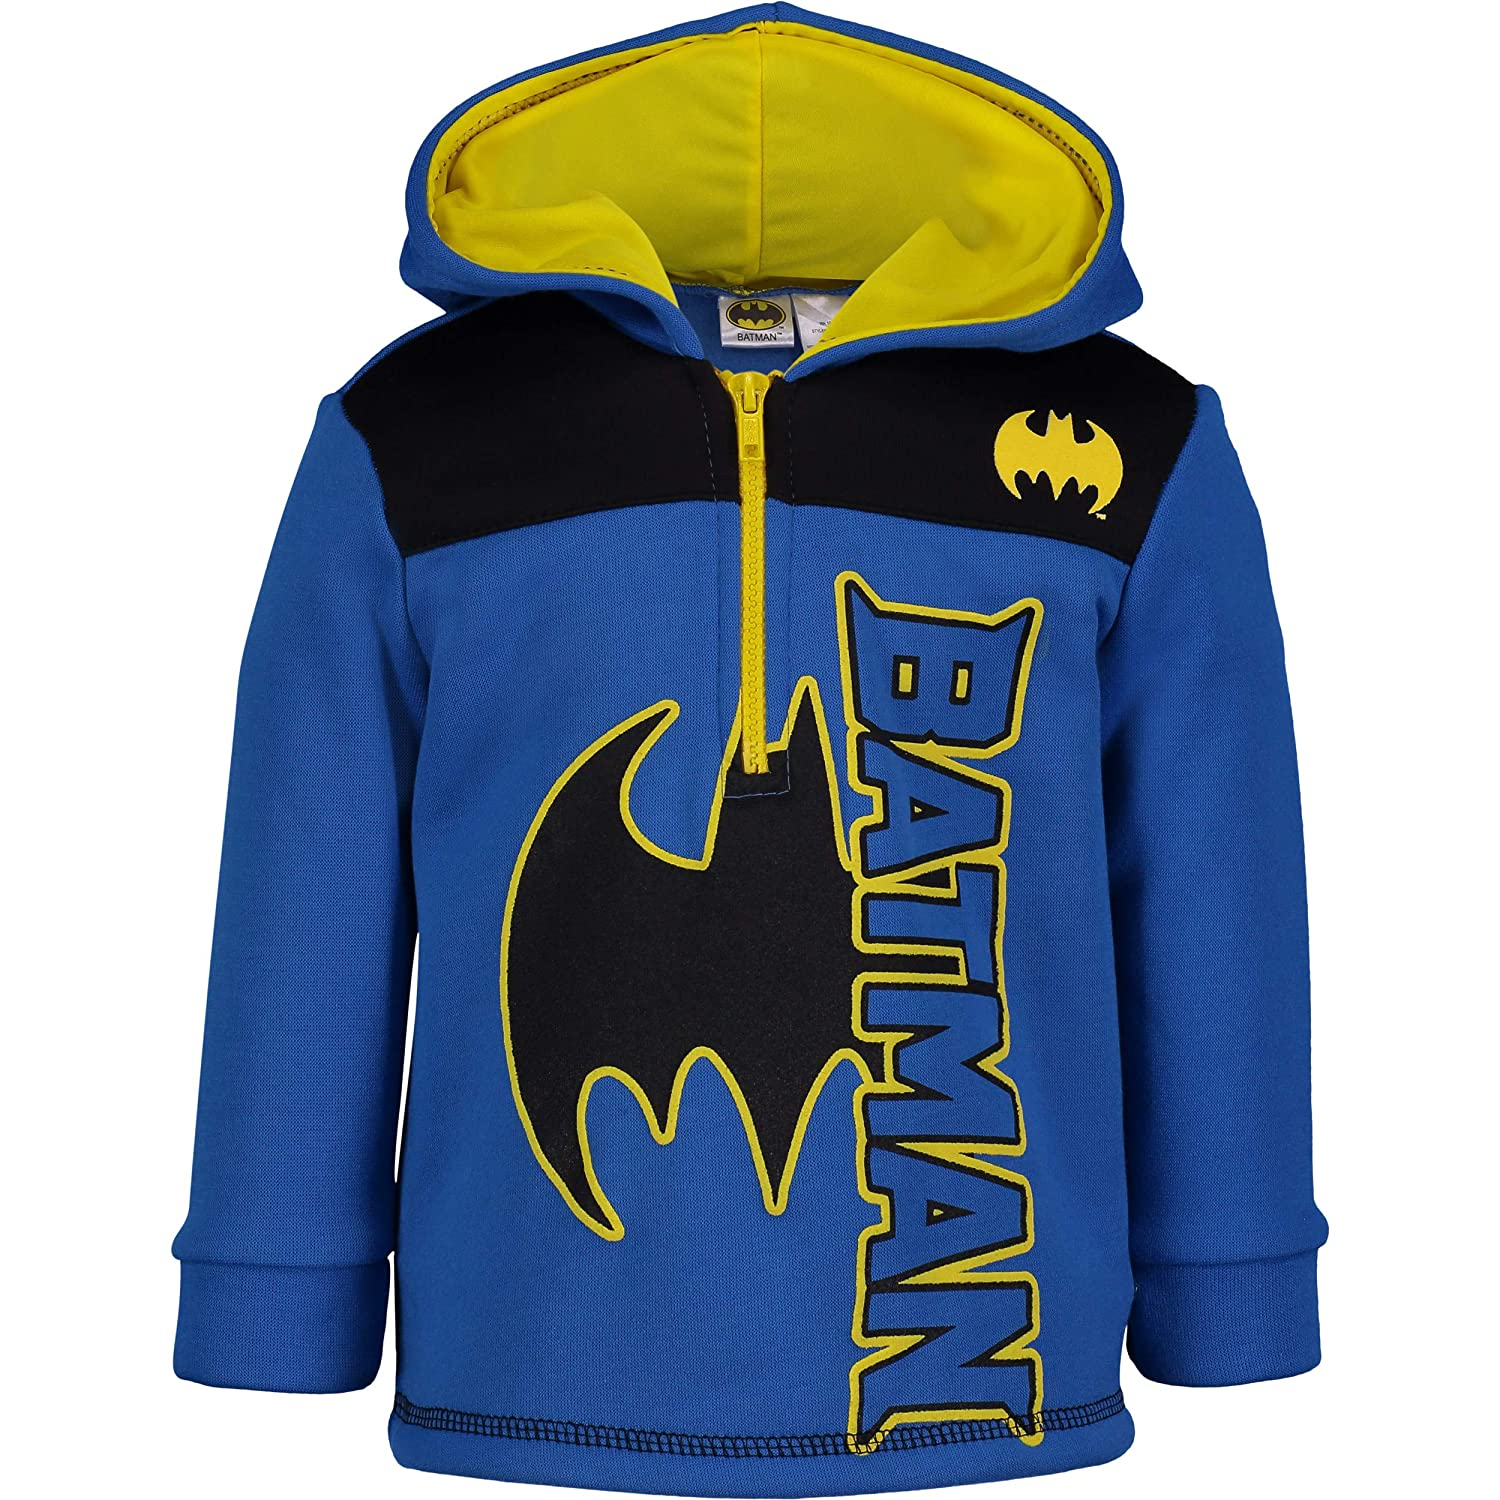 Warner Bros. Justice League Batman Half-Zip Fleece Pullover Hoodie